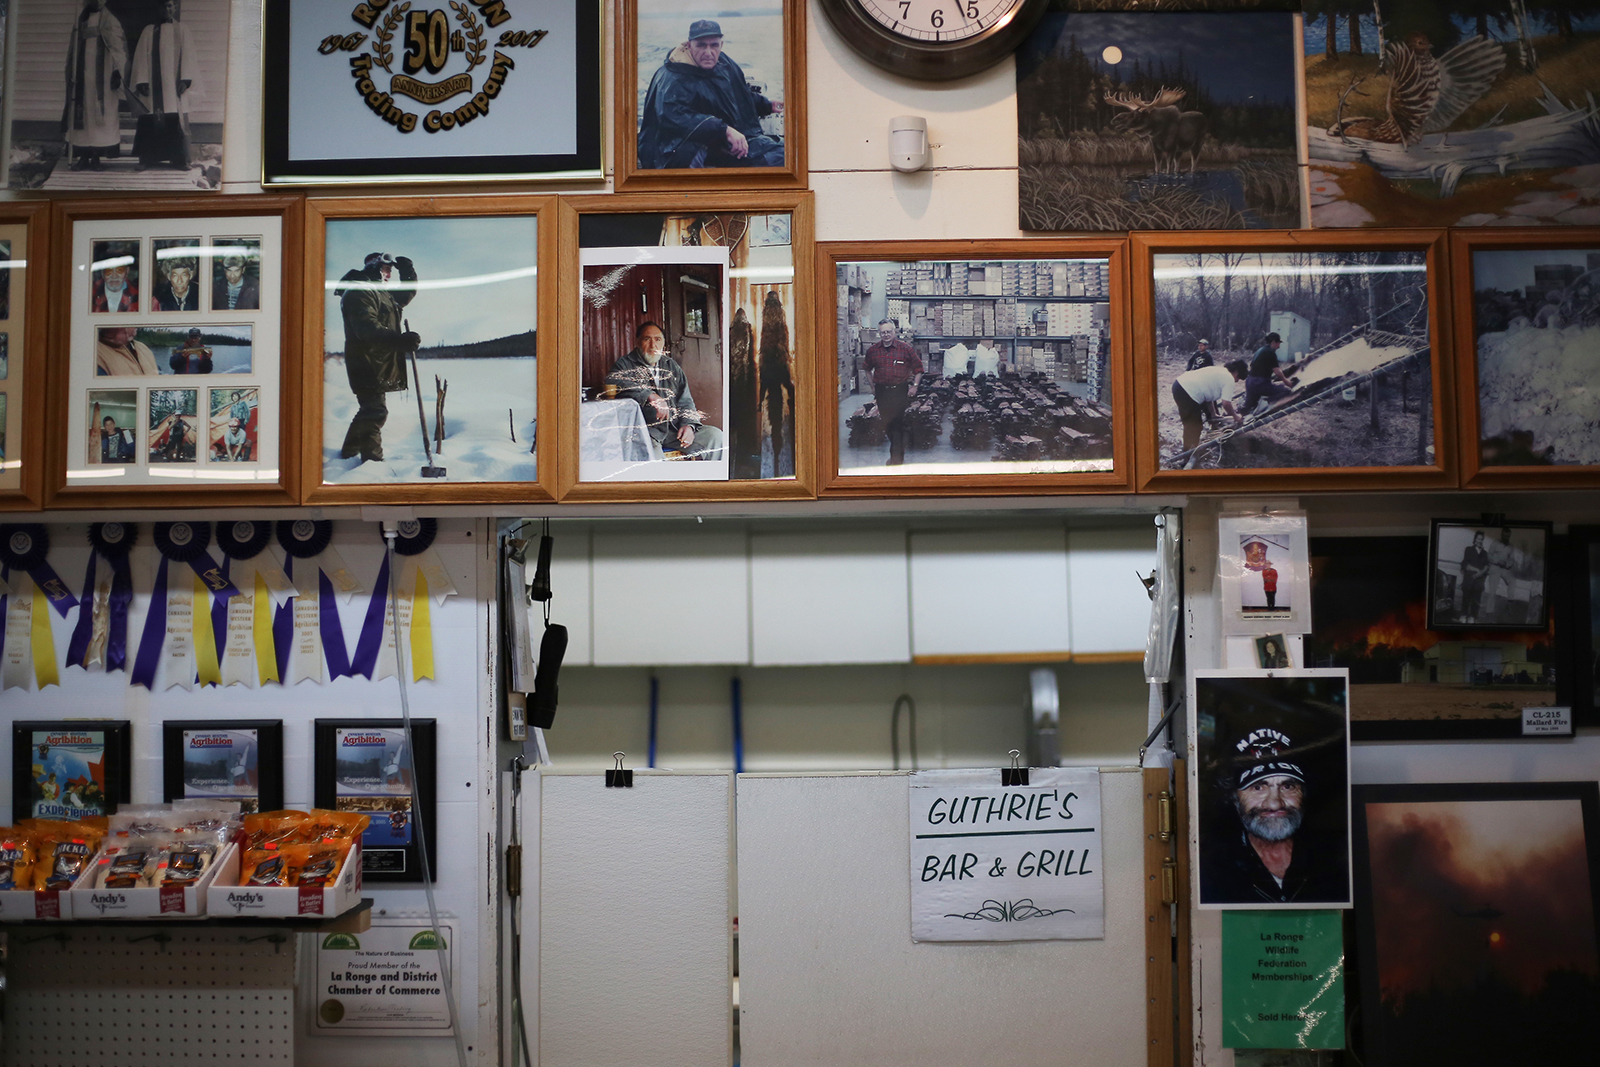 Every inch of available wall space inside Robertson Trading Co. is taken up by photos of trappers and customers